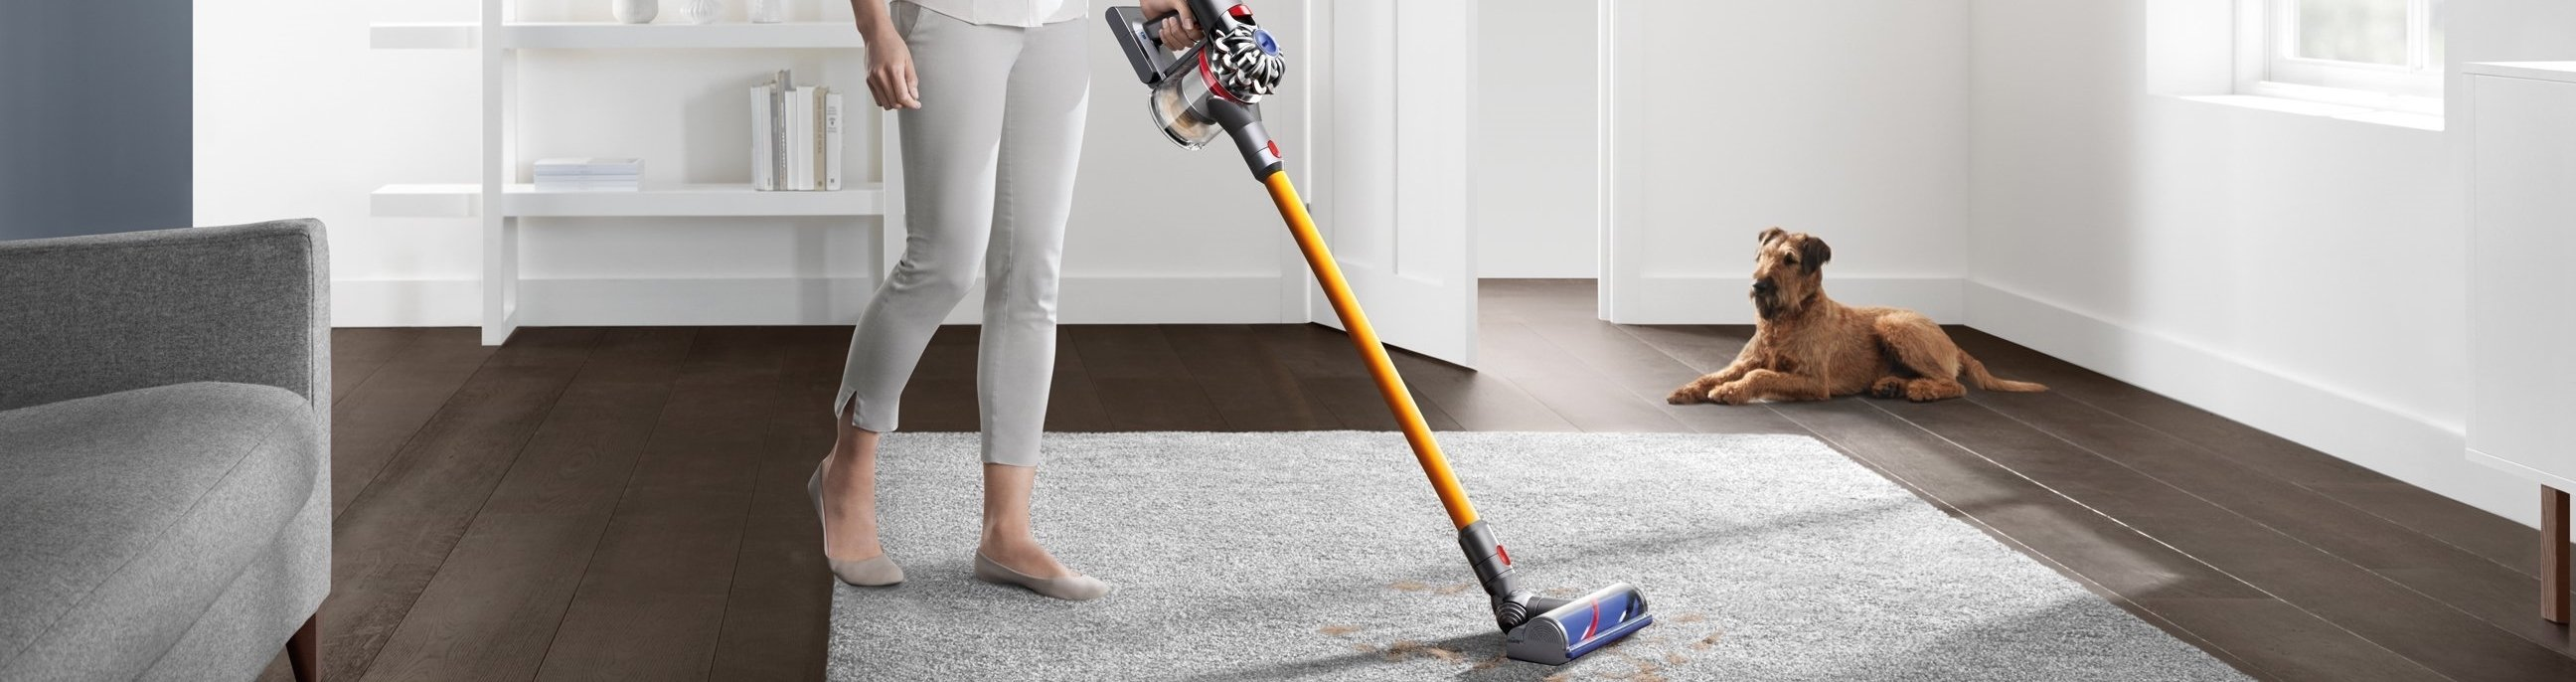 15 Best Cordless Vacuums Oct 2020 Reviews And Buying Guide